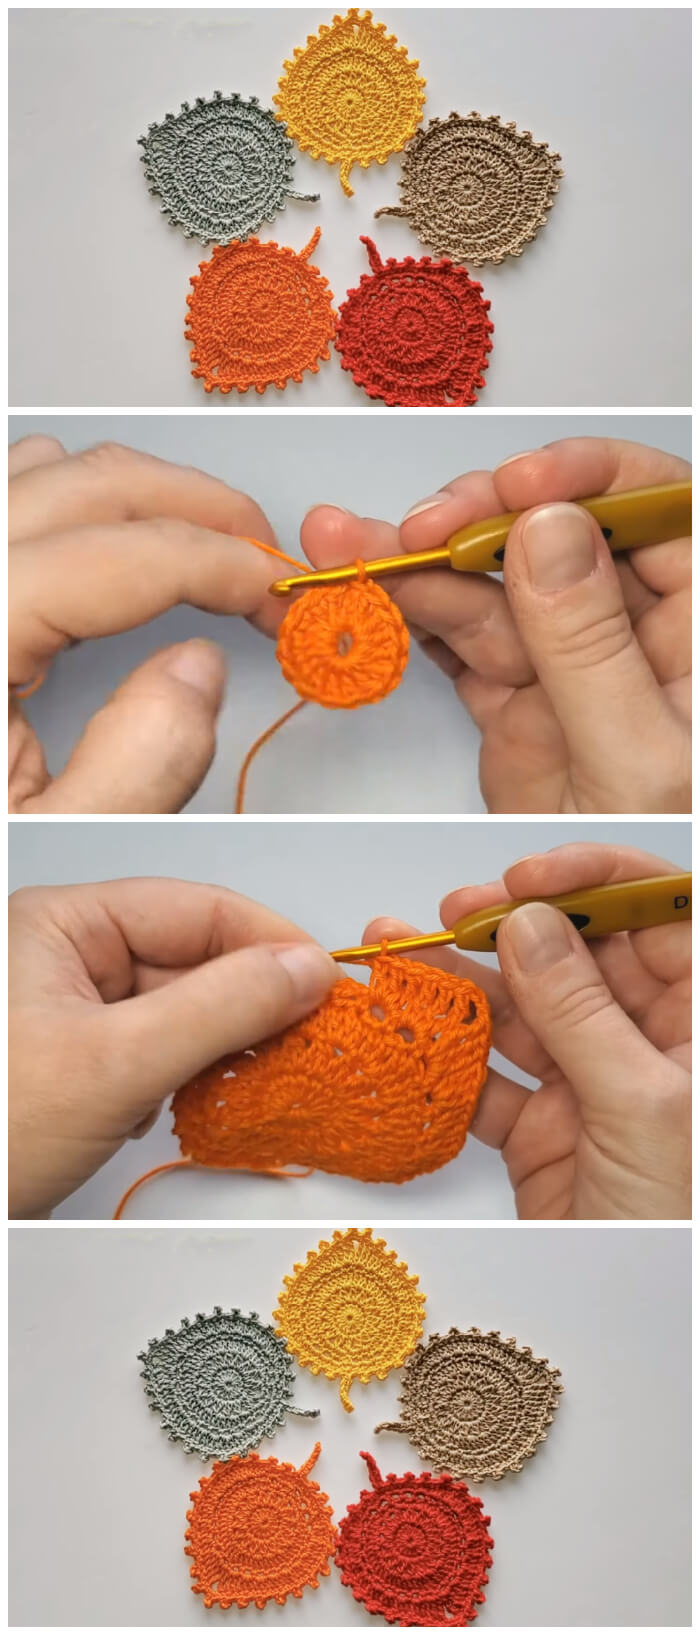 Crochet Leaf Coaster project is right the perfect time for Autumn home purpose. This tutorial is a best, if you'd like to decorate your home for this season with these bright and cheerful Leaf Coasters.